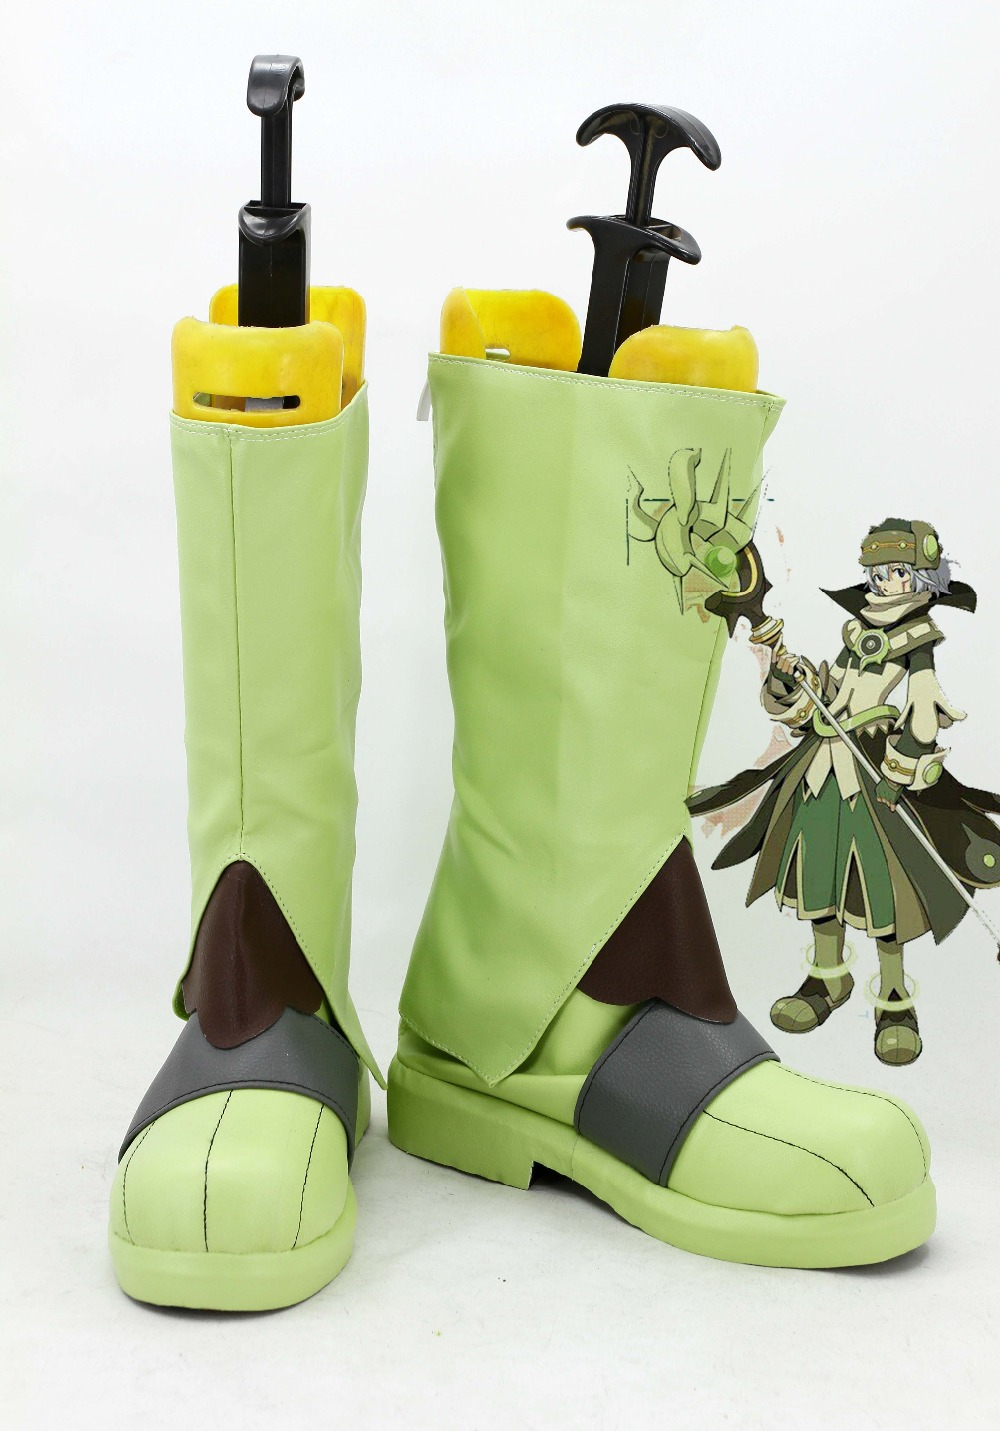 0 female costumes customize cos hack COSPLAY customized cos hack shoes boots costumes